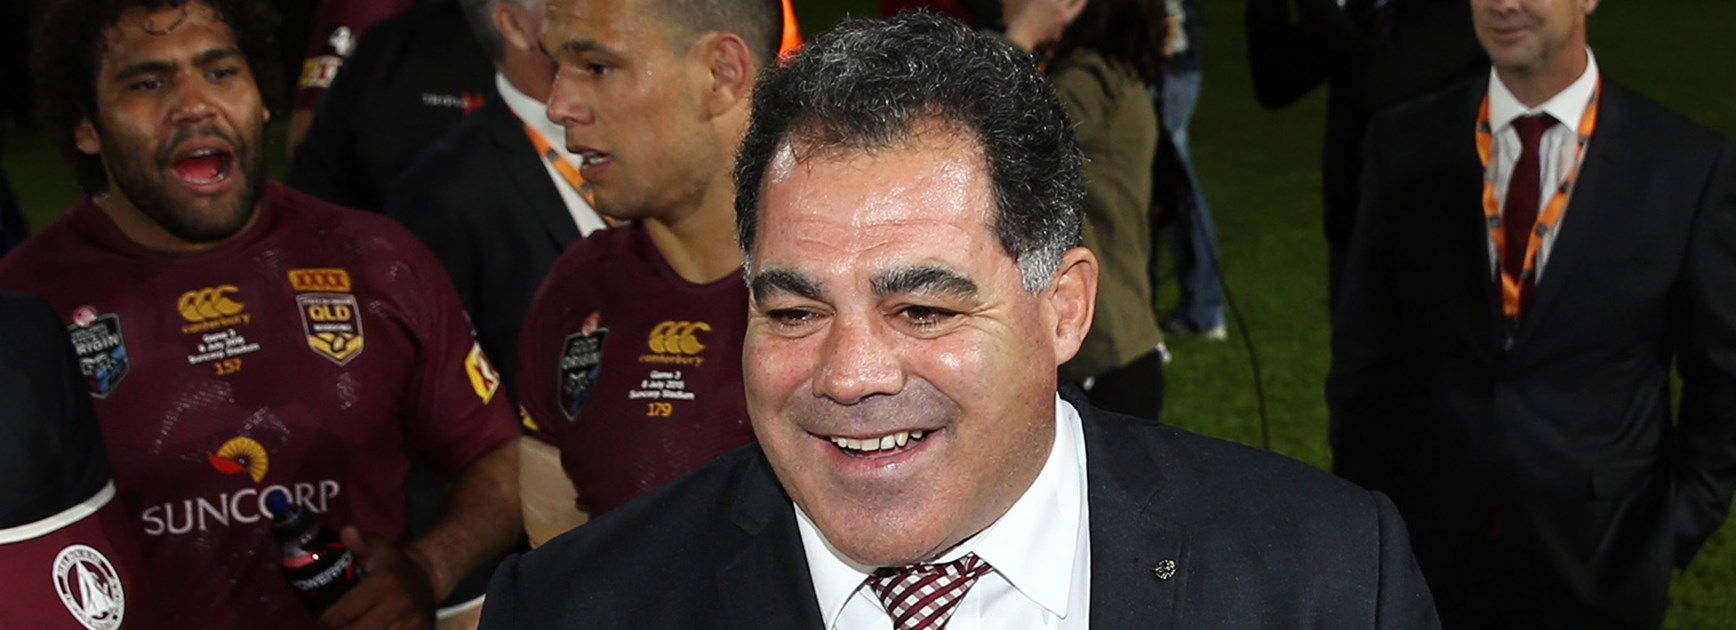 The ARL Commission has appointed Mal Meninga as dedicated Kangaroos coach through to the end of 2019.